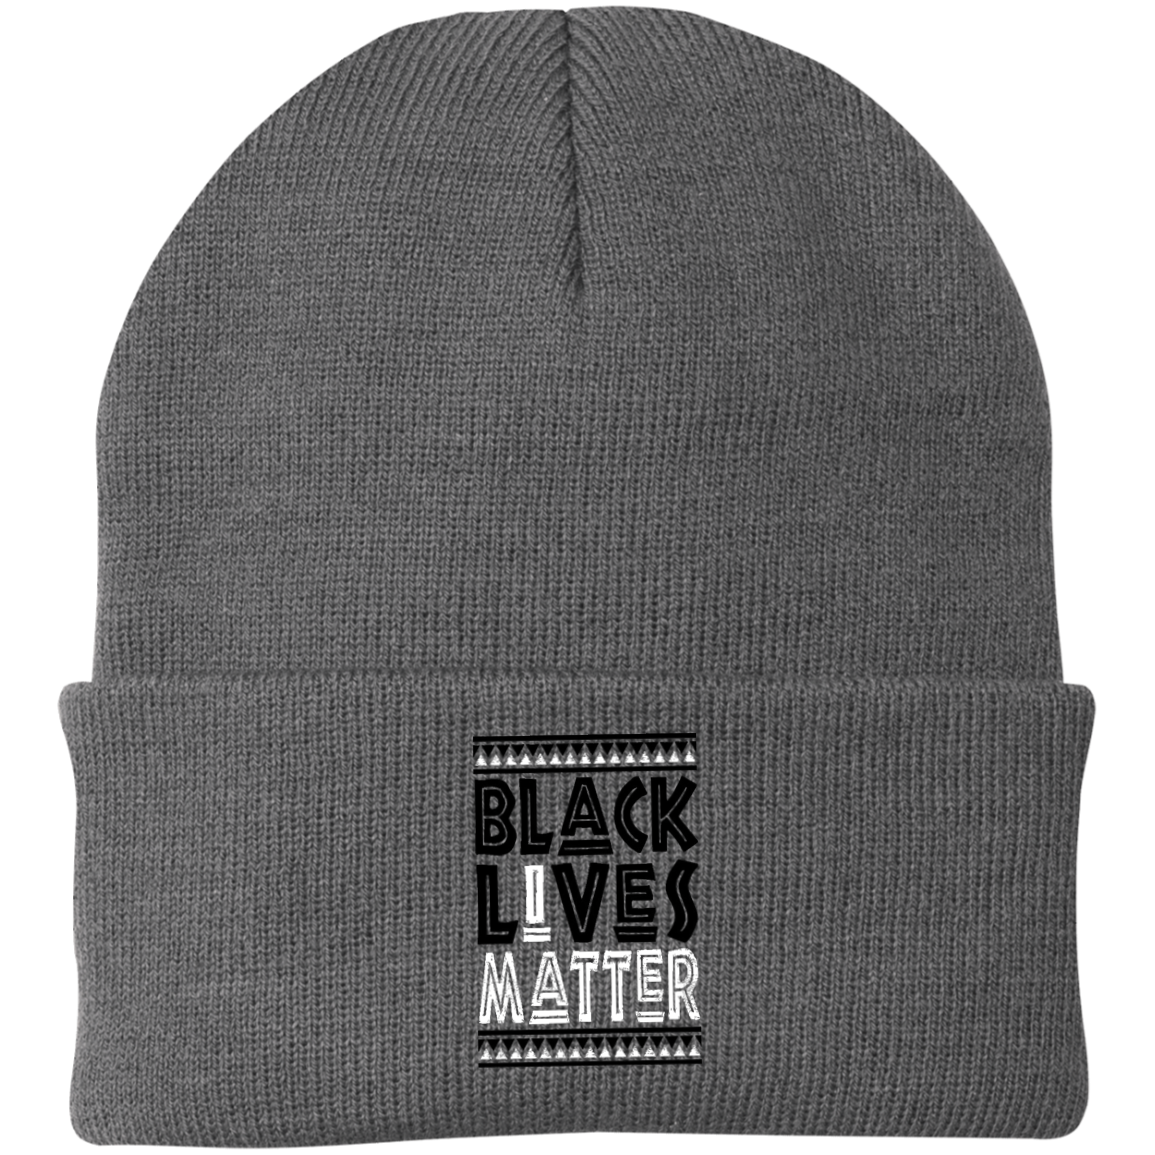 Black Lives Matter Embroidered knit cap - SW@gSpot